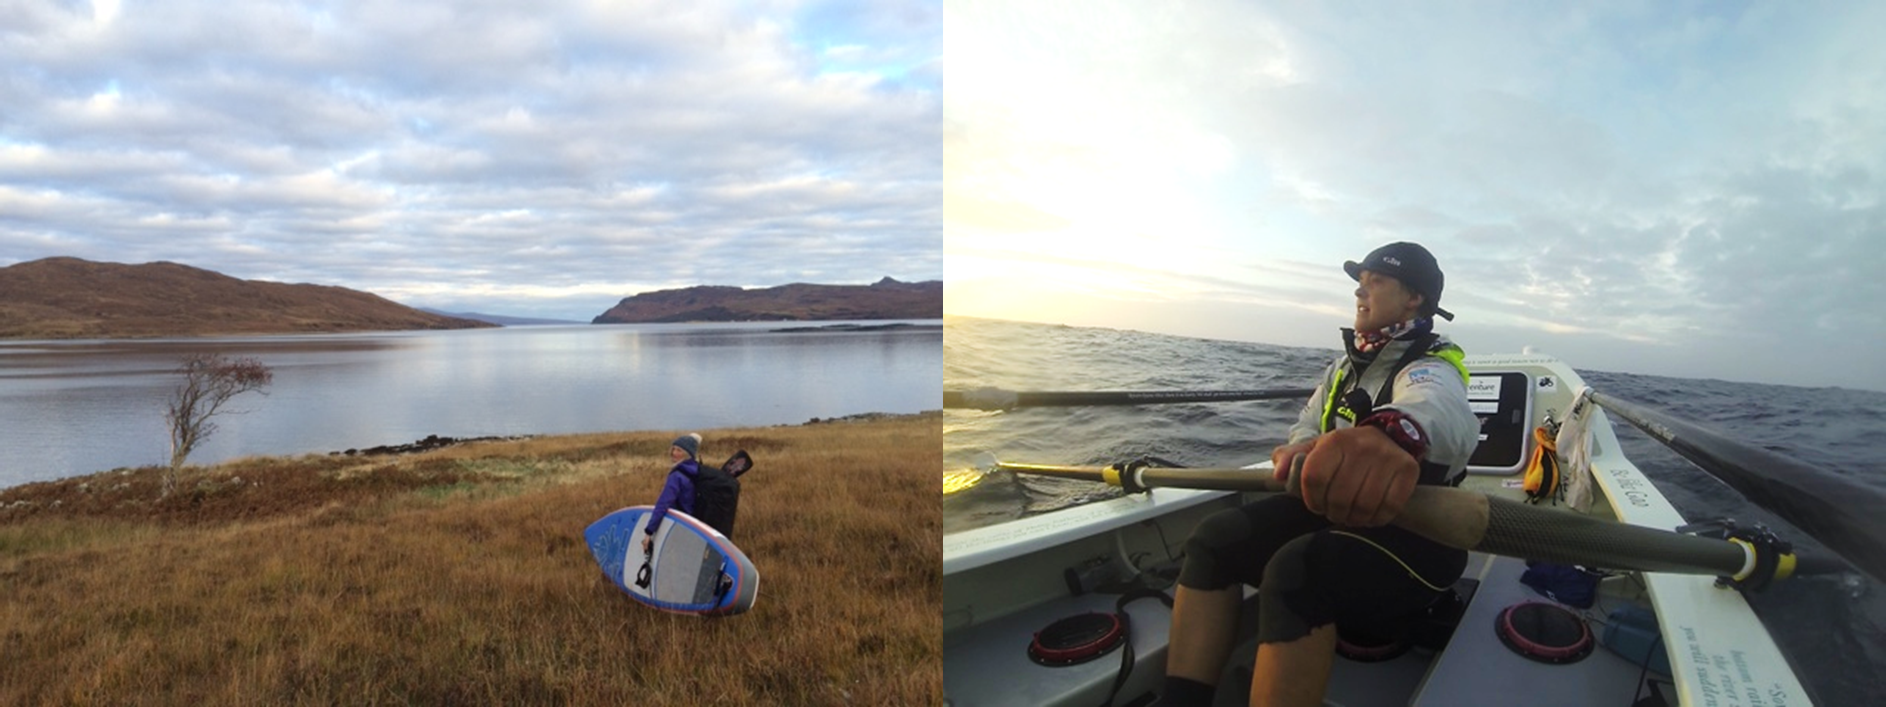 Cal Major and Sarah Outen talk planning, paddling and periods